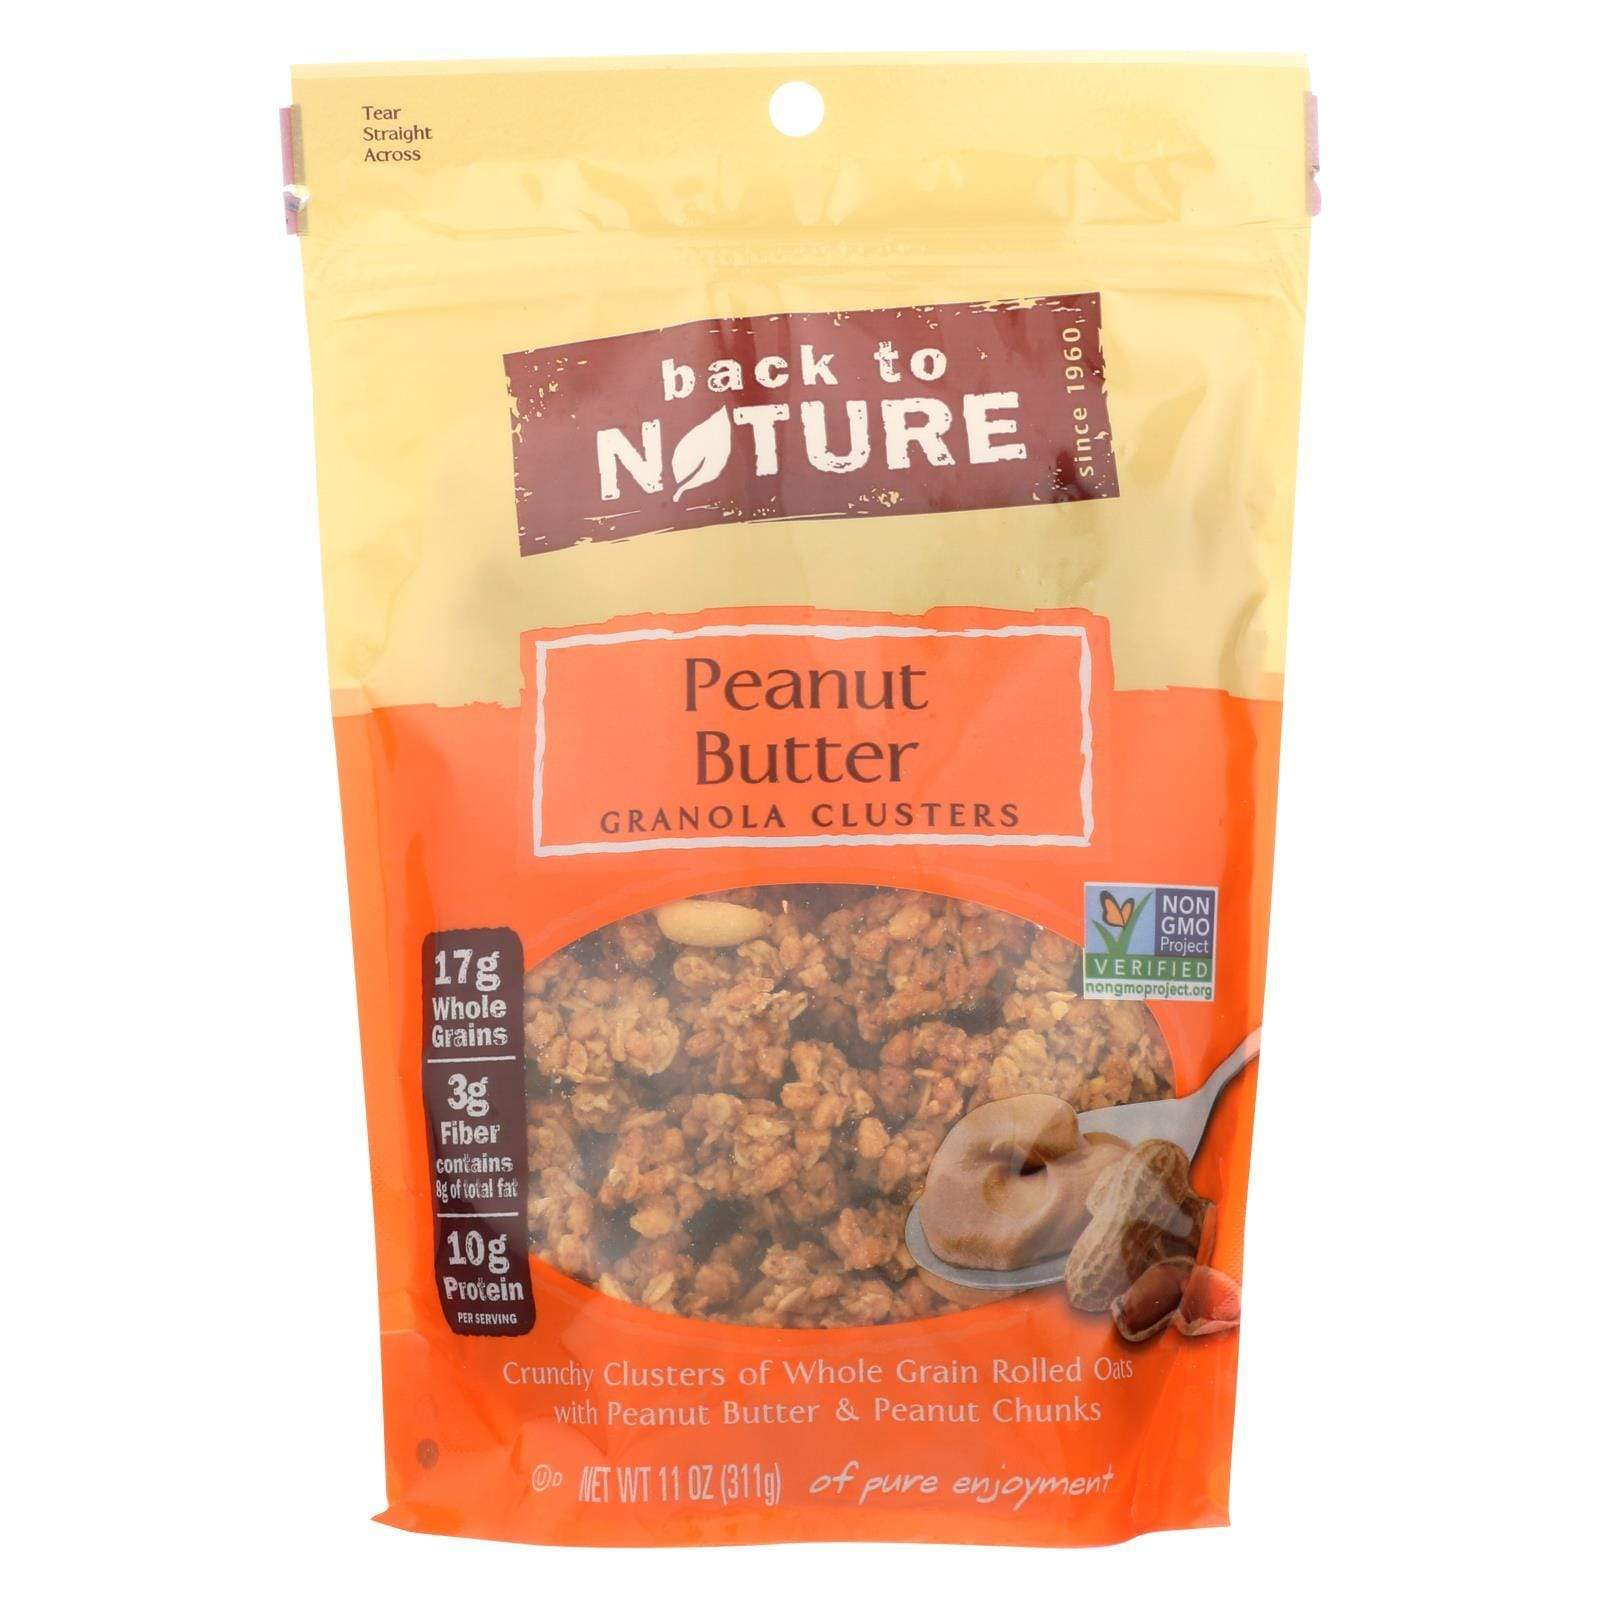 Back To Nature Nuts, Seeds & Granola Back To Nature Granola - Peanut Butter - Case Of 6 - 11 Oz.